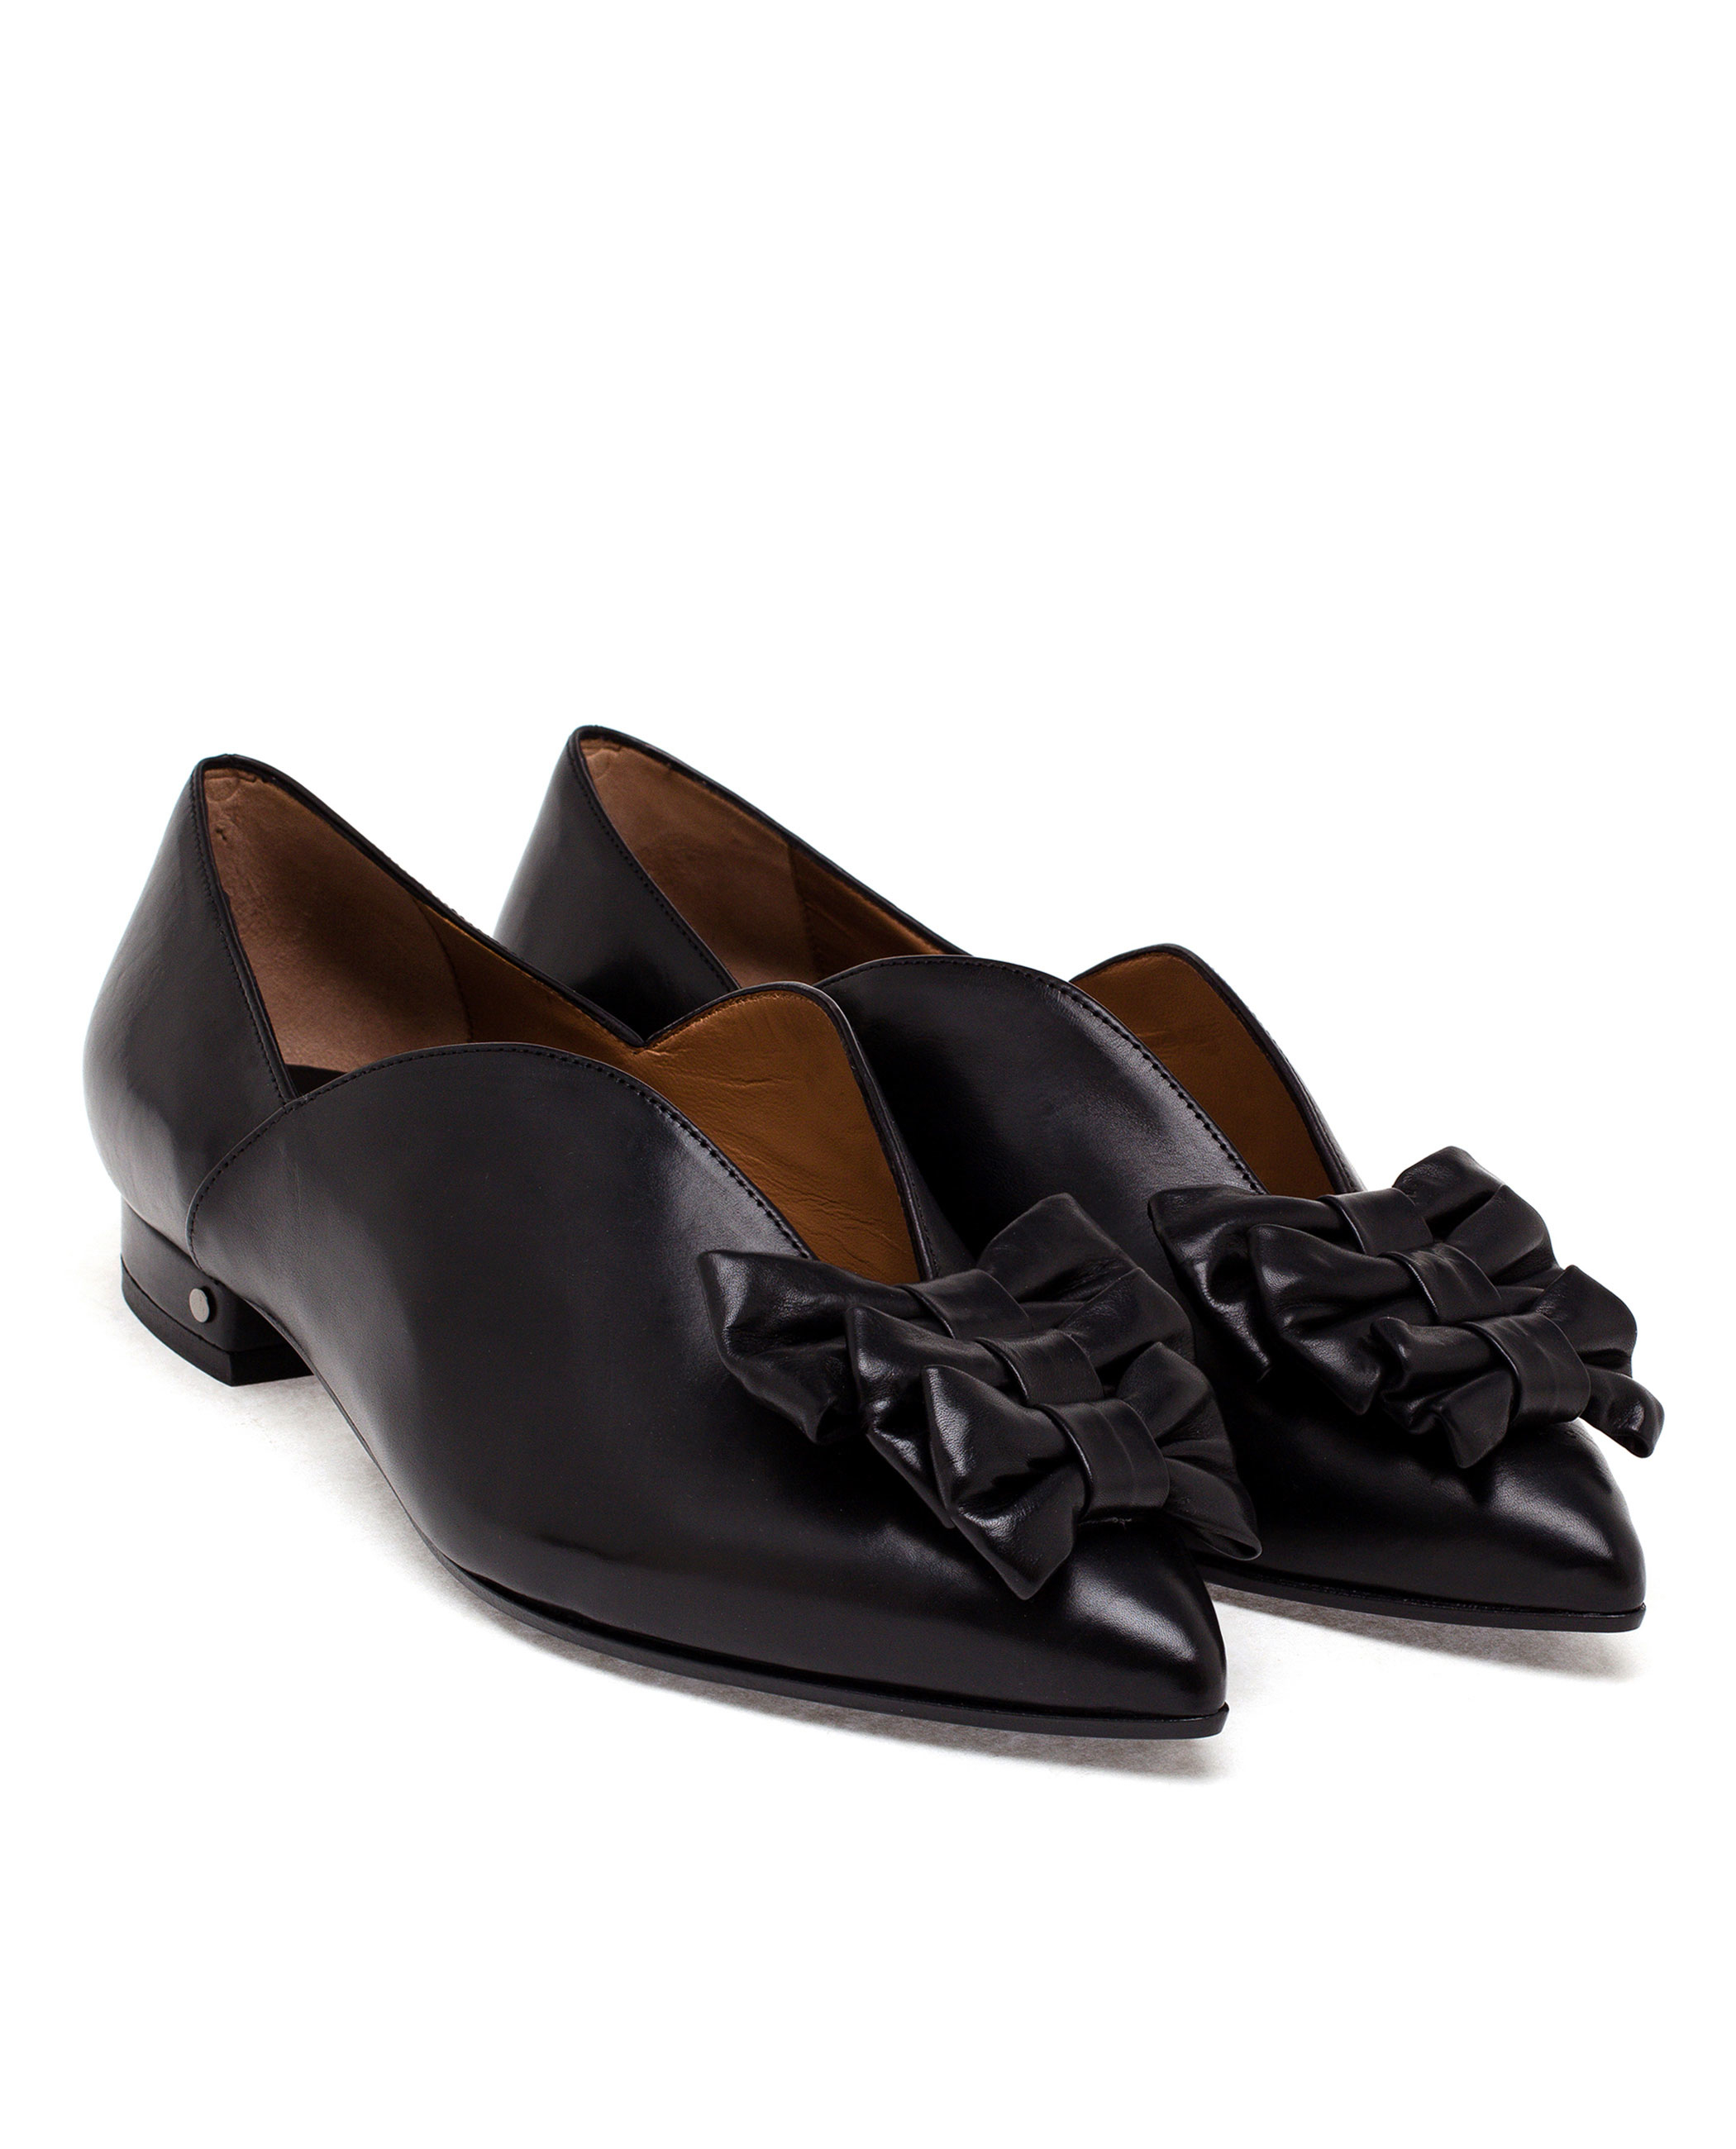 Pre-owned - Leather flats Laurence Dacade K9rmhwJOf